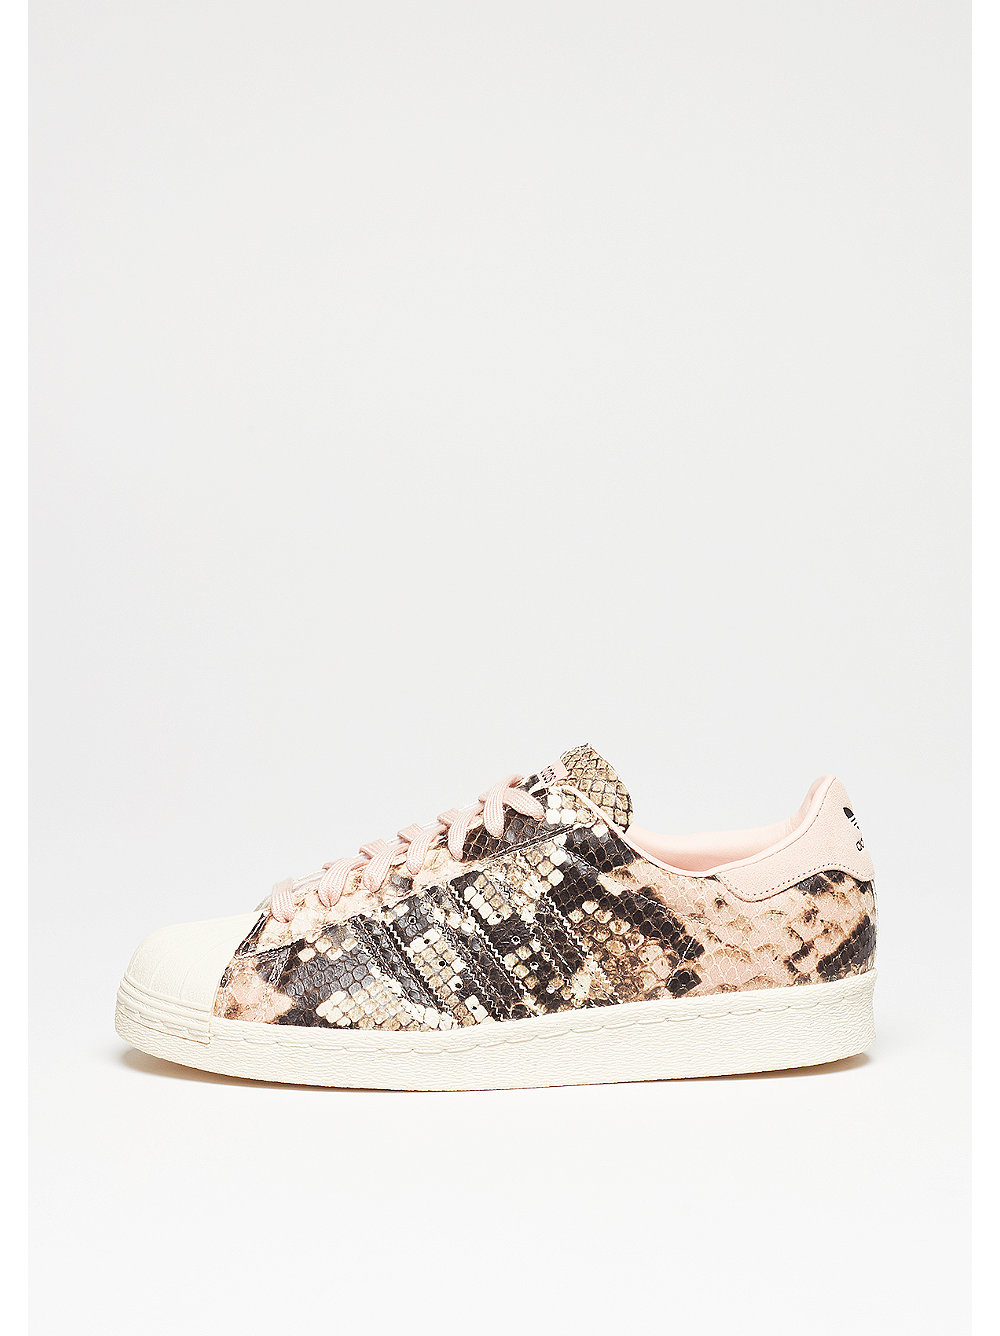 adidas Superstar 80s vapour pink-vapour pink-off white